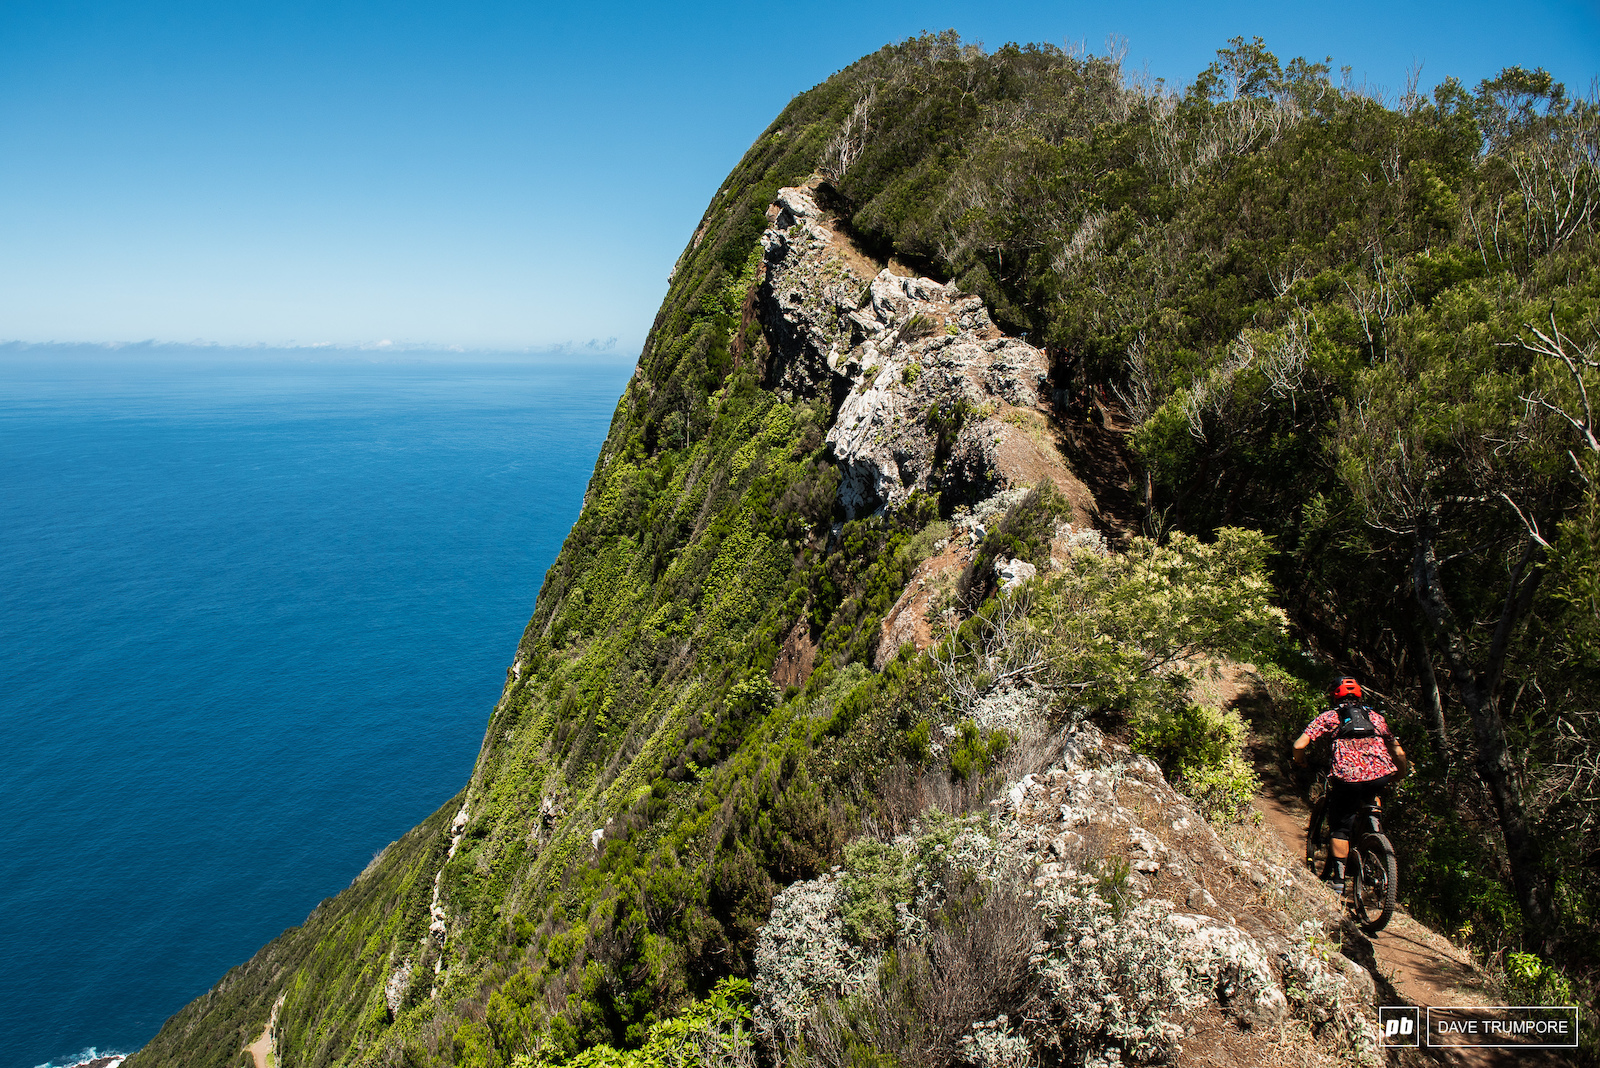 The classic cliffside views of stage 7